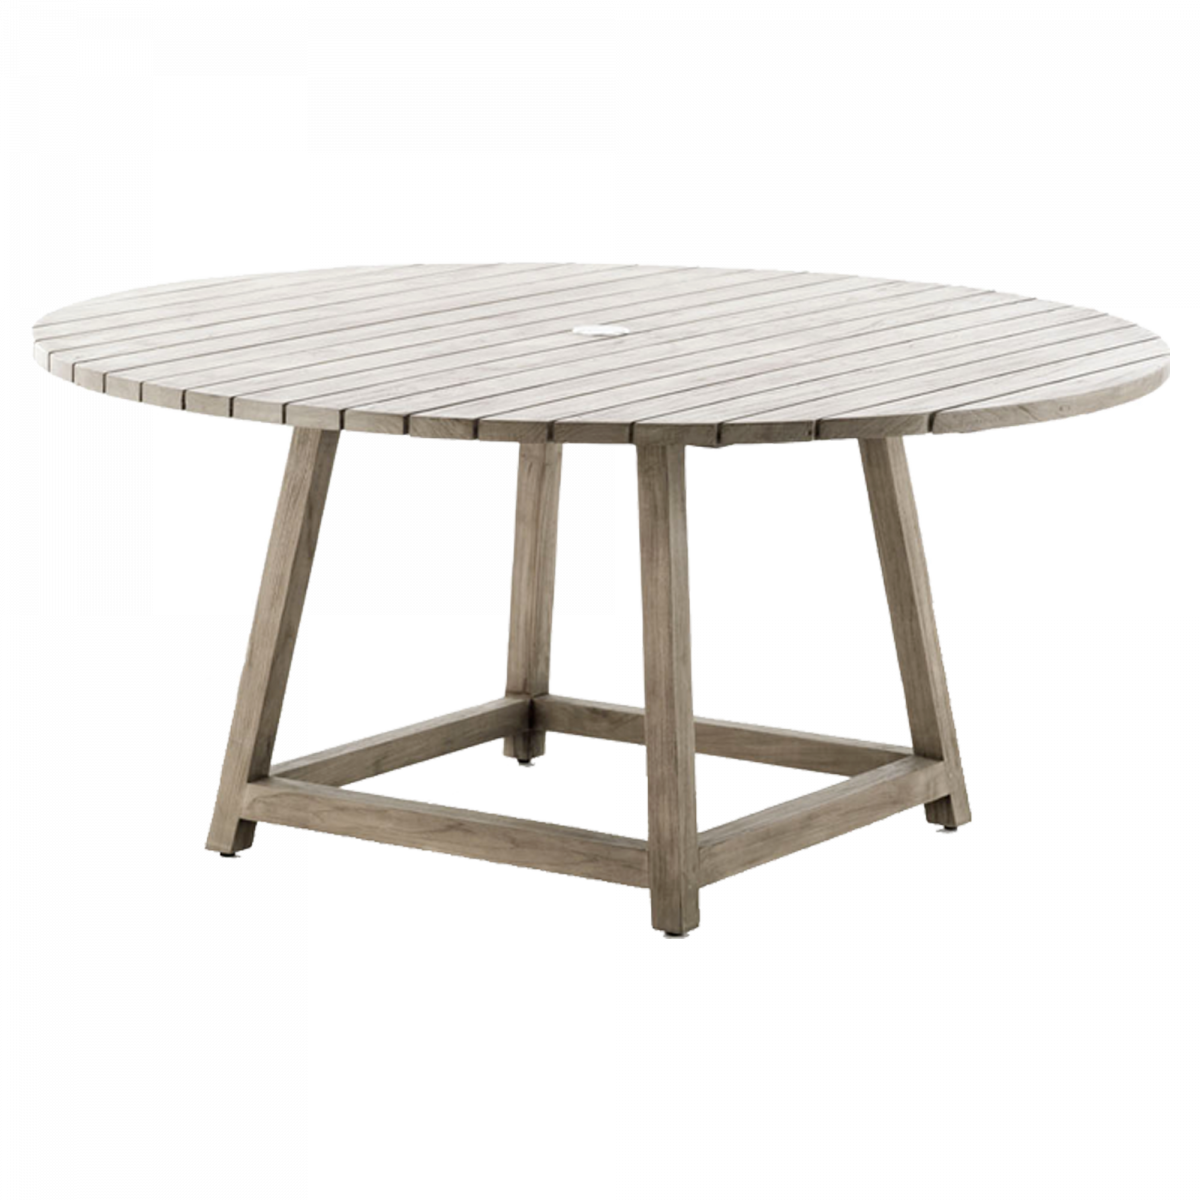 Teak Wood Sika Desing Design, Round Wooden Garden Table And Chairs Ireland